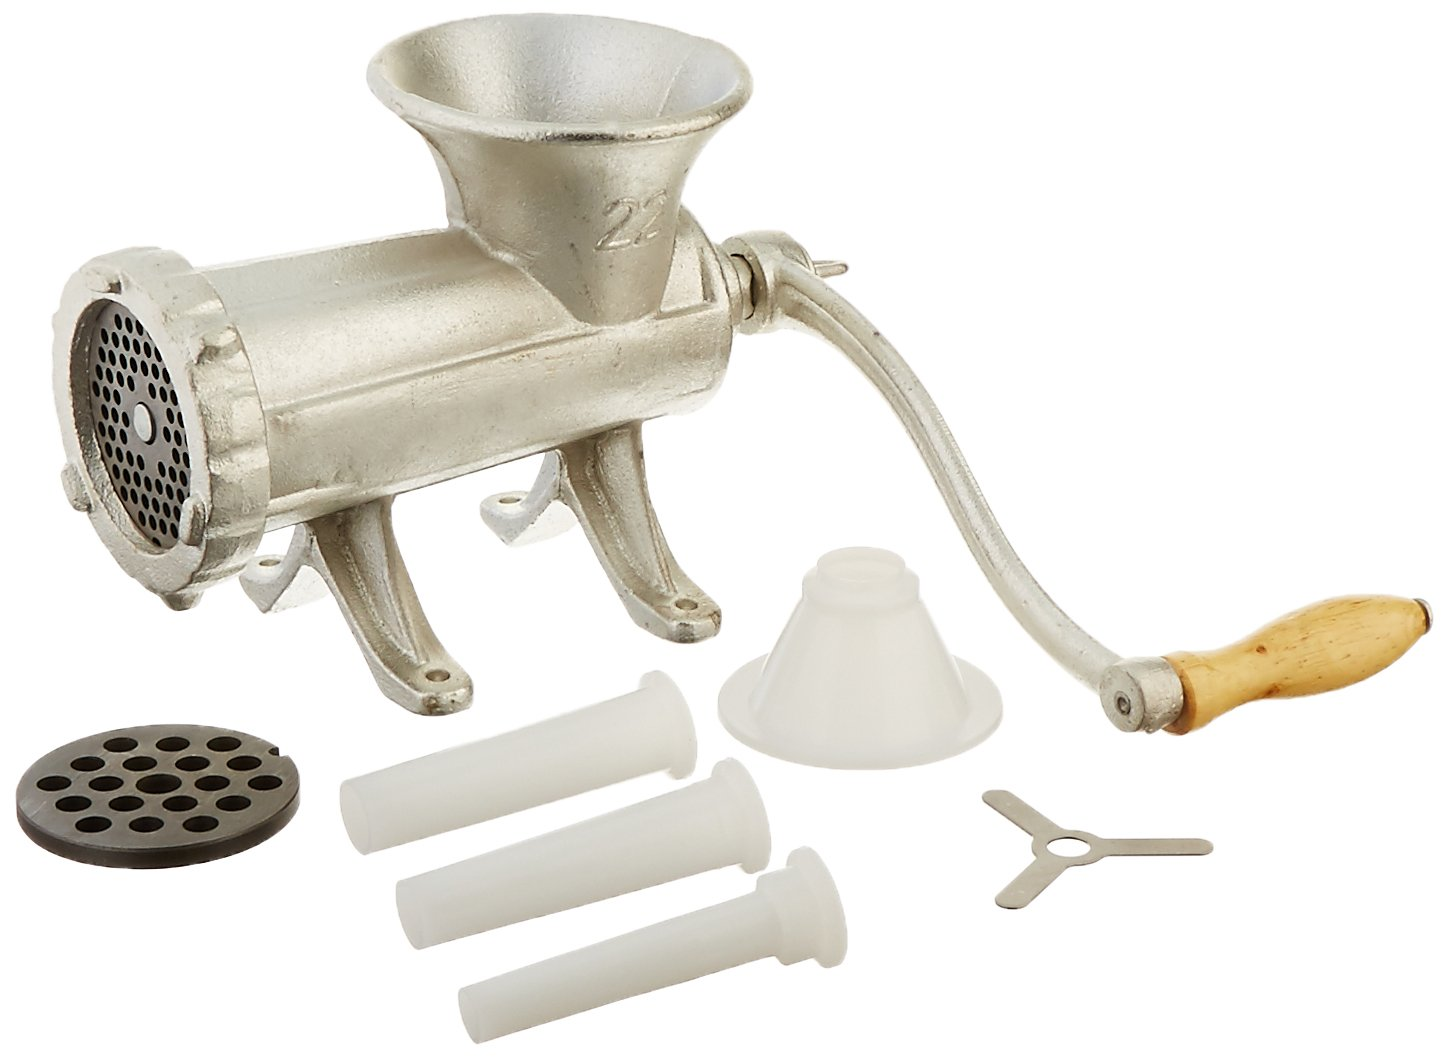 Weston #22 Manual Tinned Meat Grinder and Sausage Stuffer (36-2201-W), 2 plate sizes, +3 sausage funnels